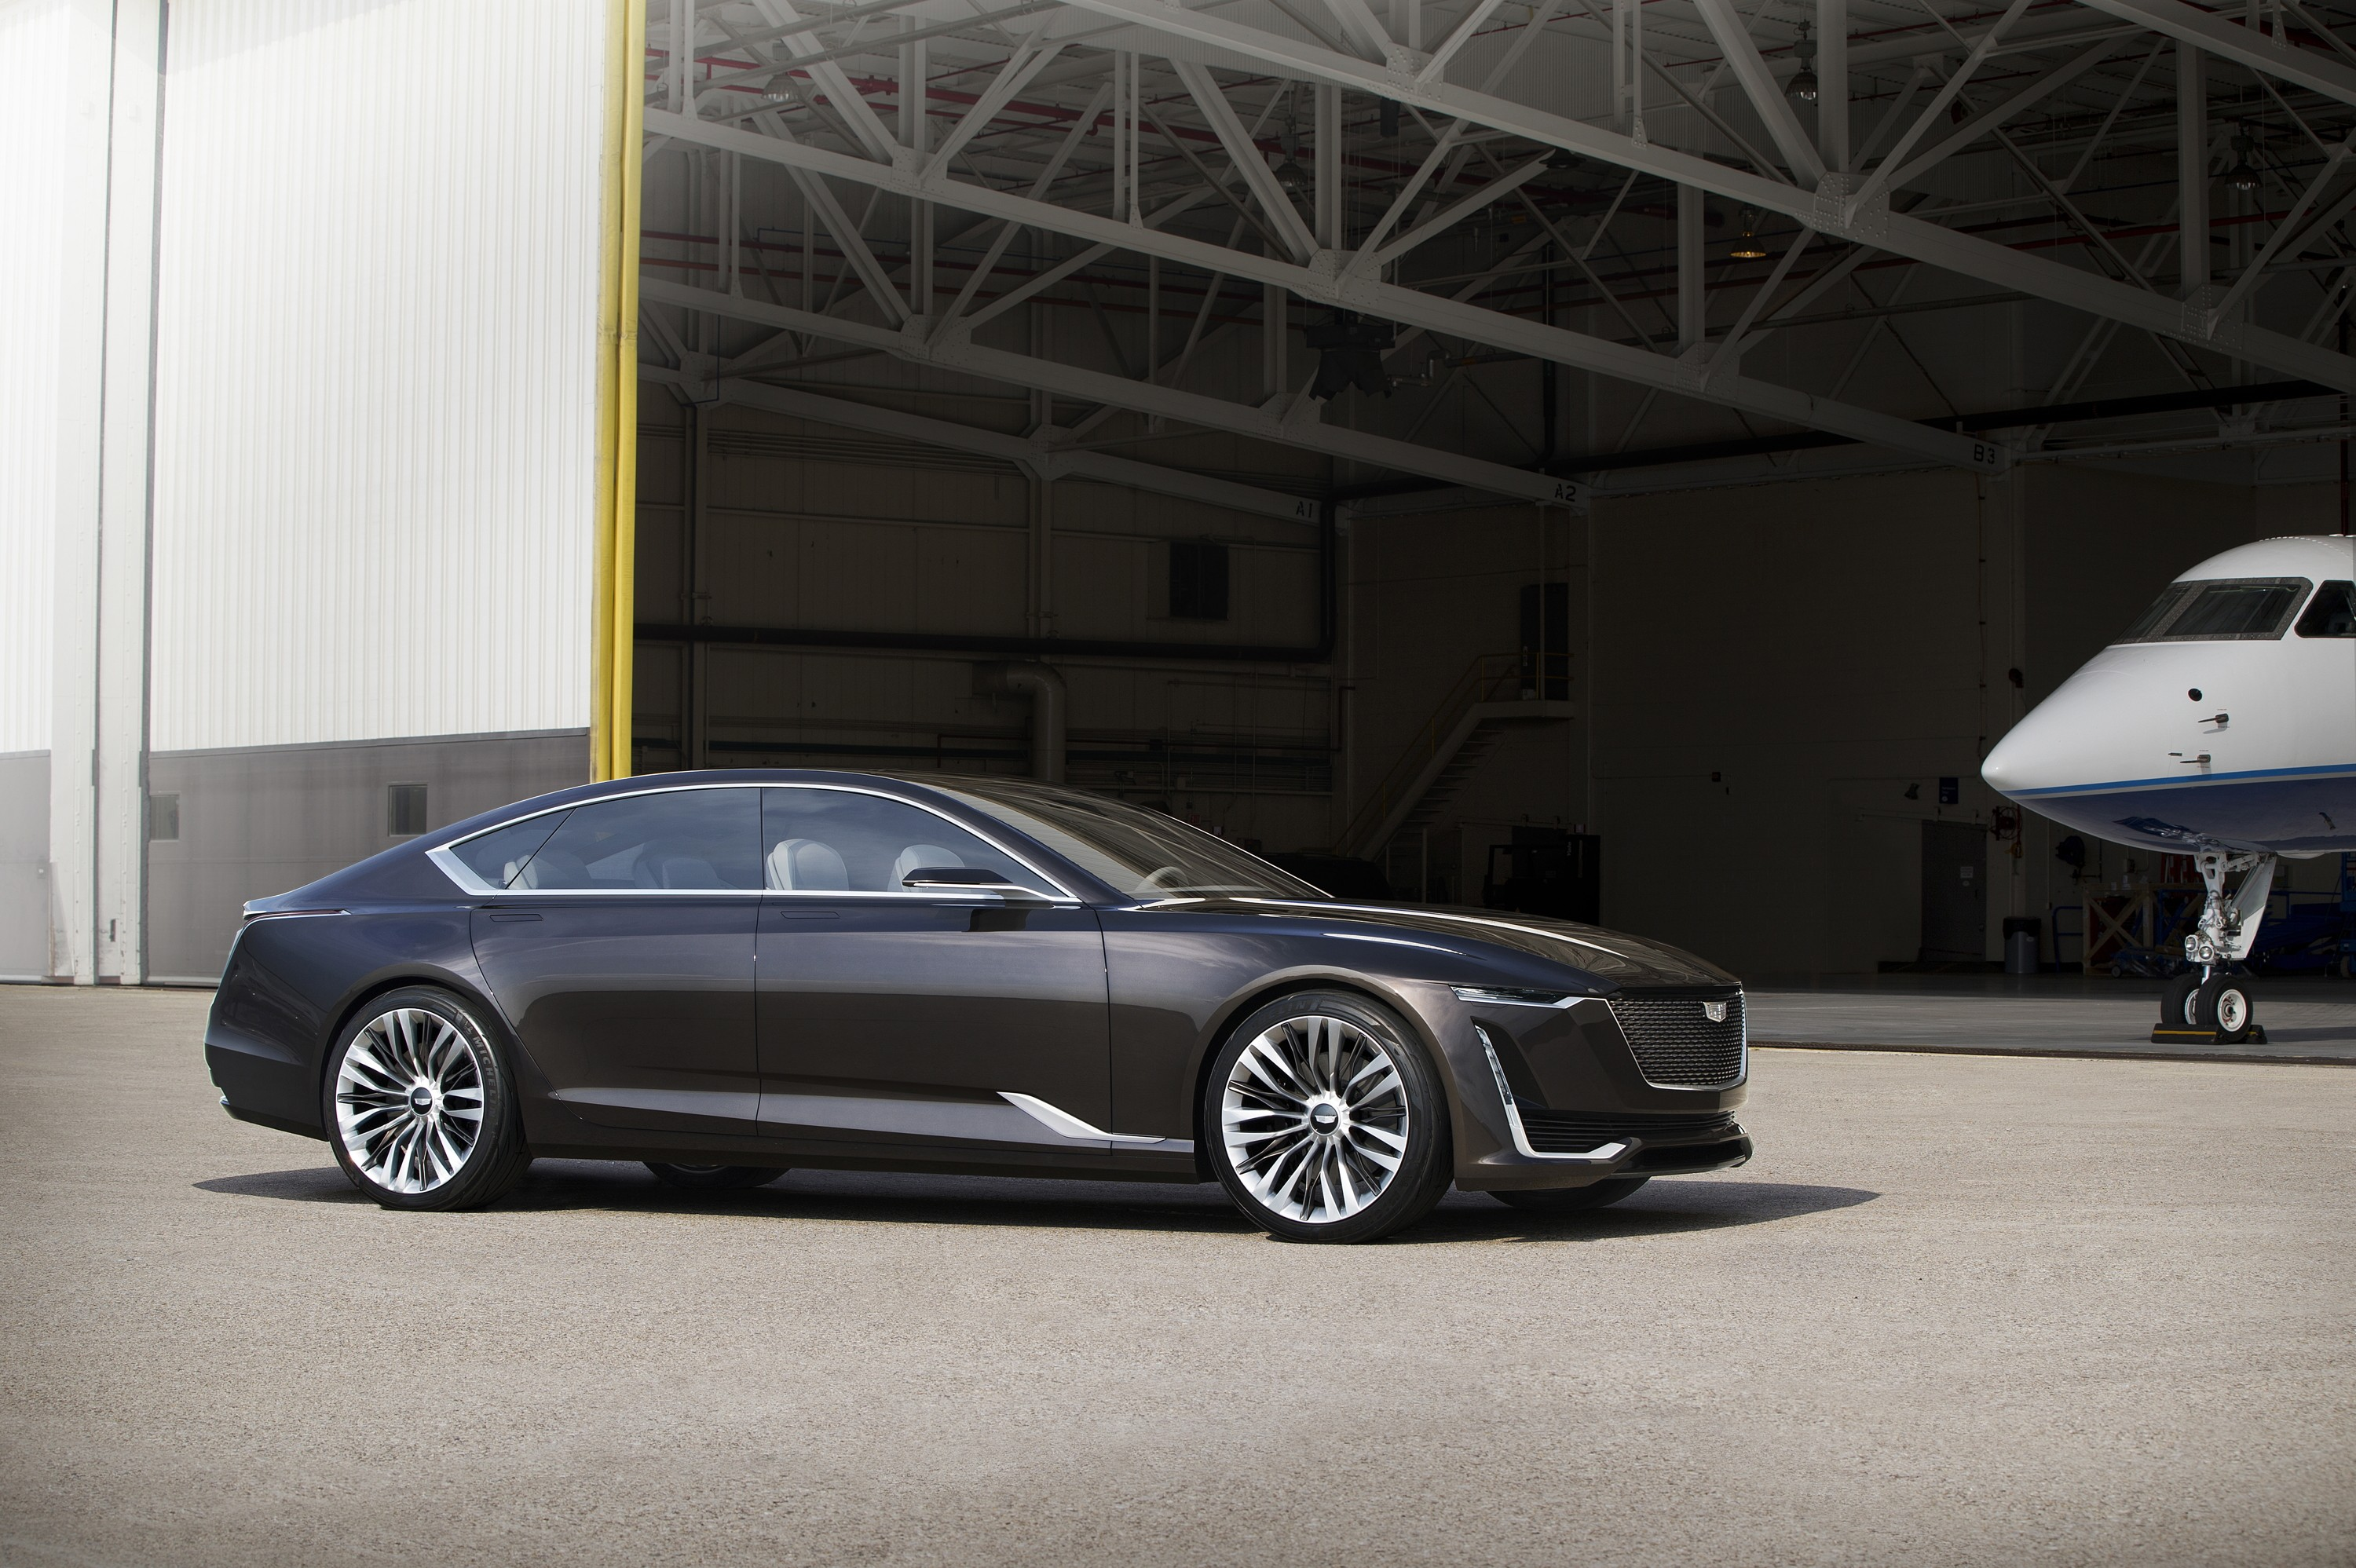 33 New 2020 Cadillac CT6 Price Design and Review